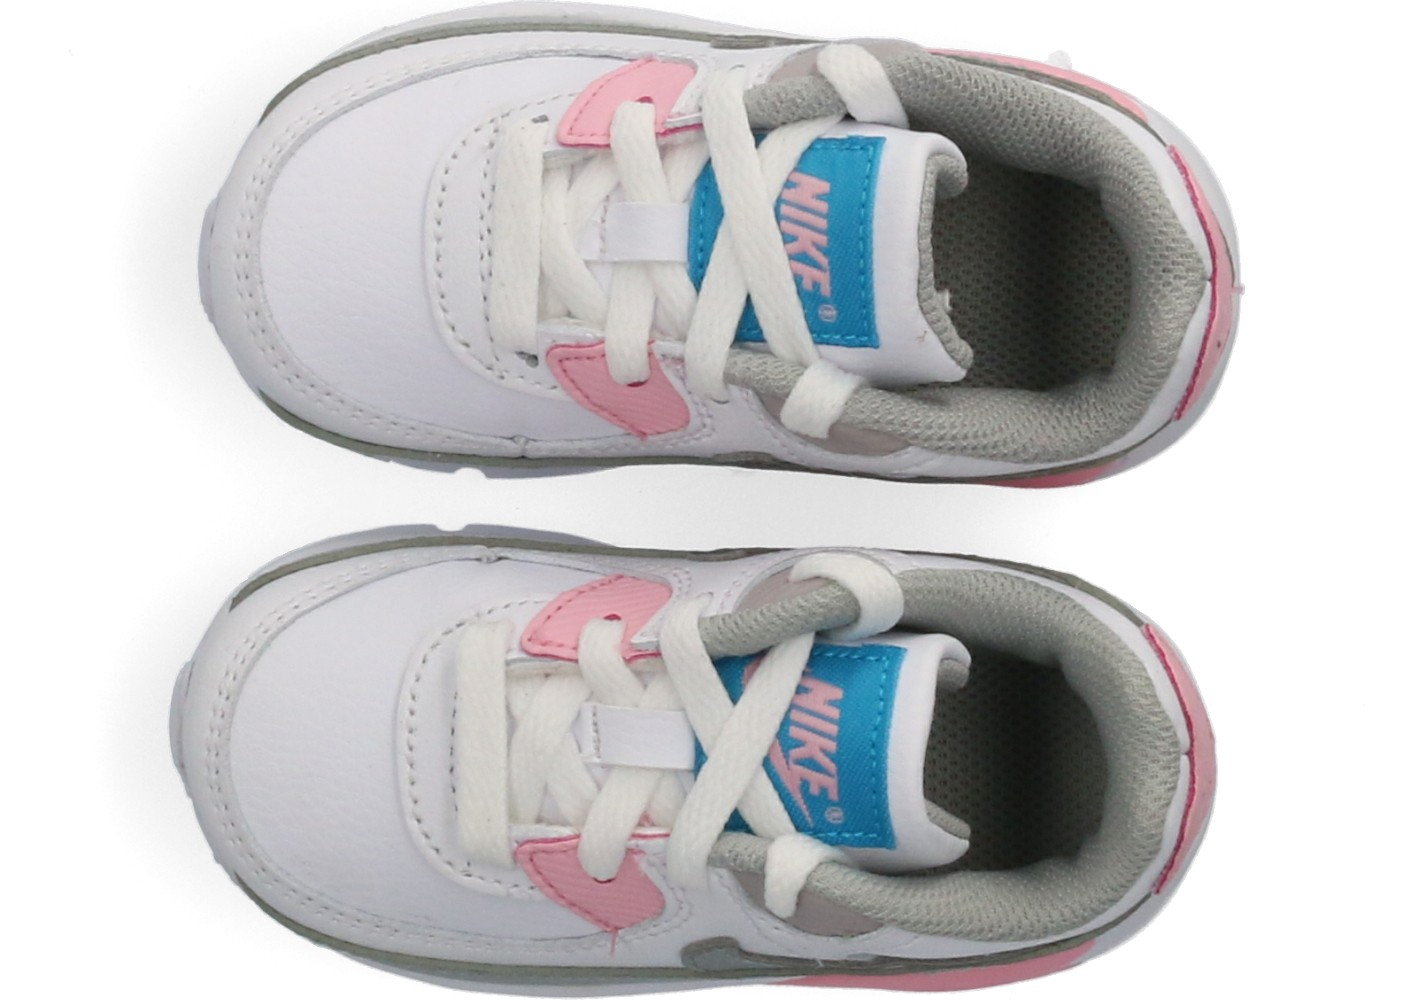 chaussure nike rose blanc moinde 60